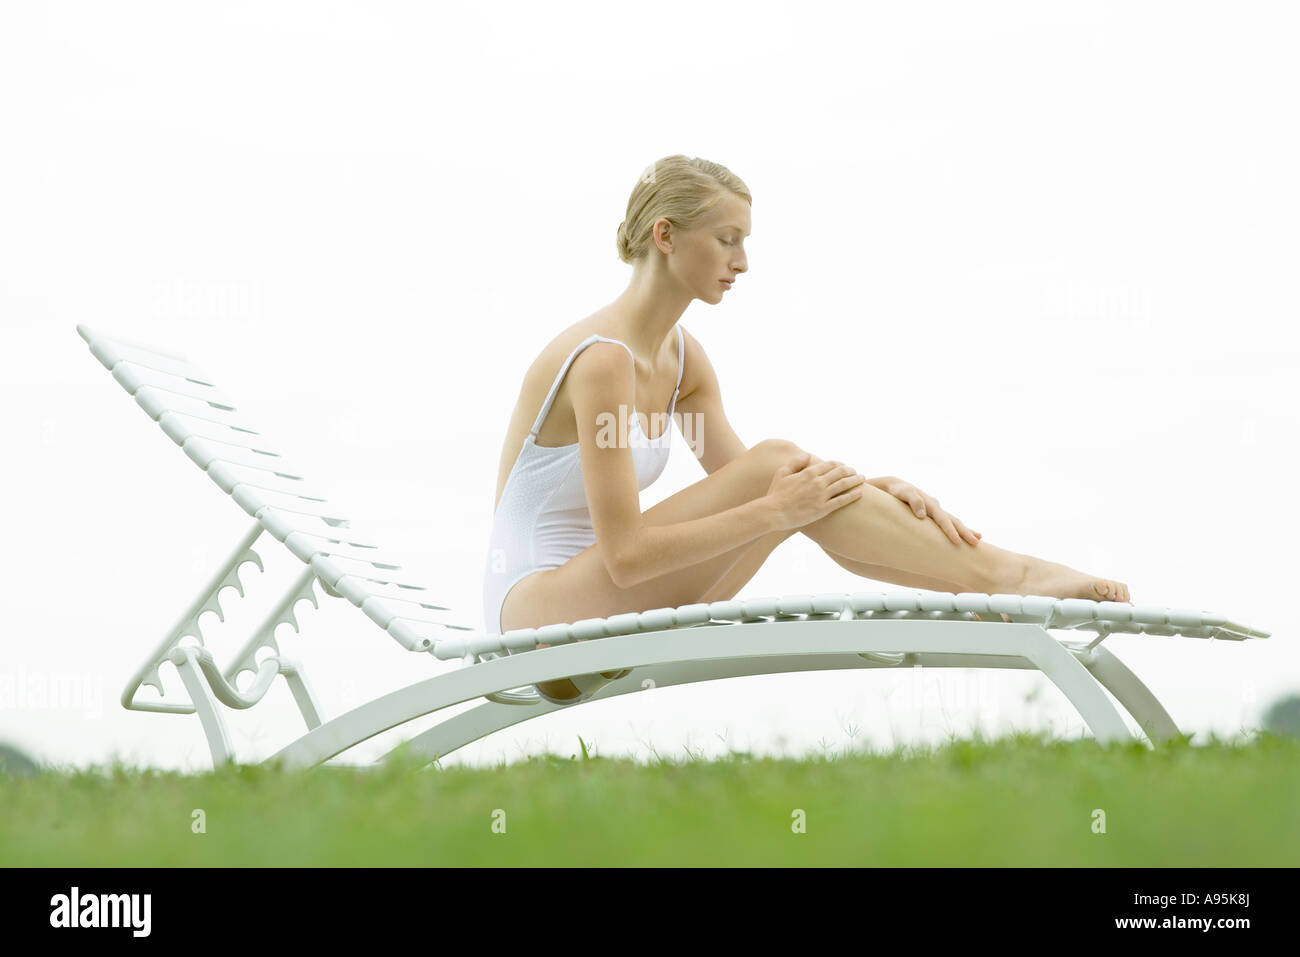 Teenage girl sitting on lounge chair, hands on legs - Stock Image